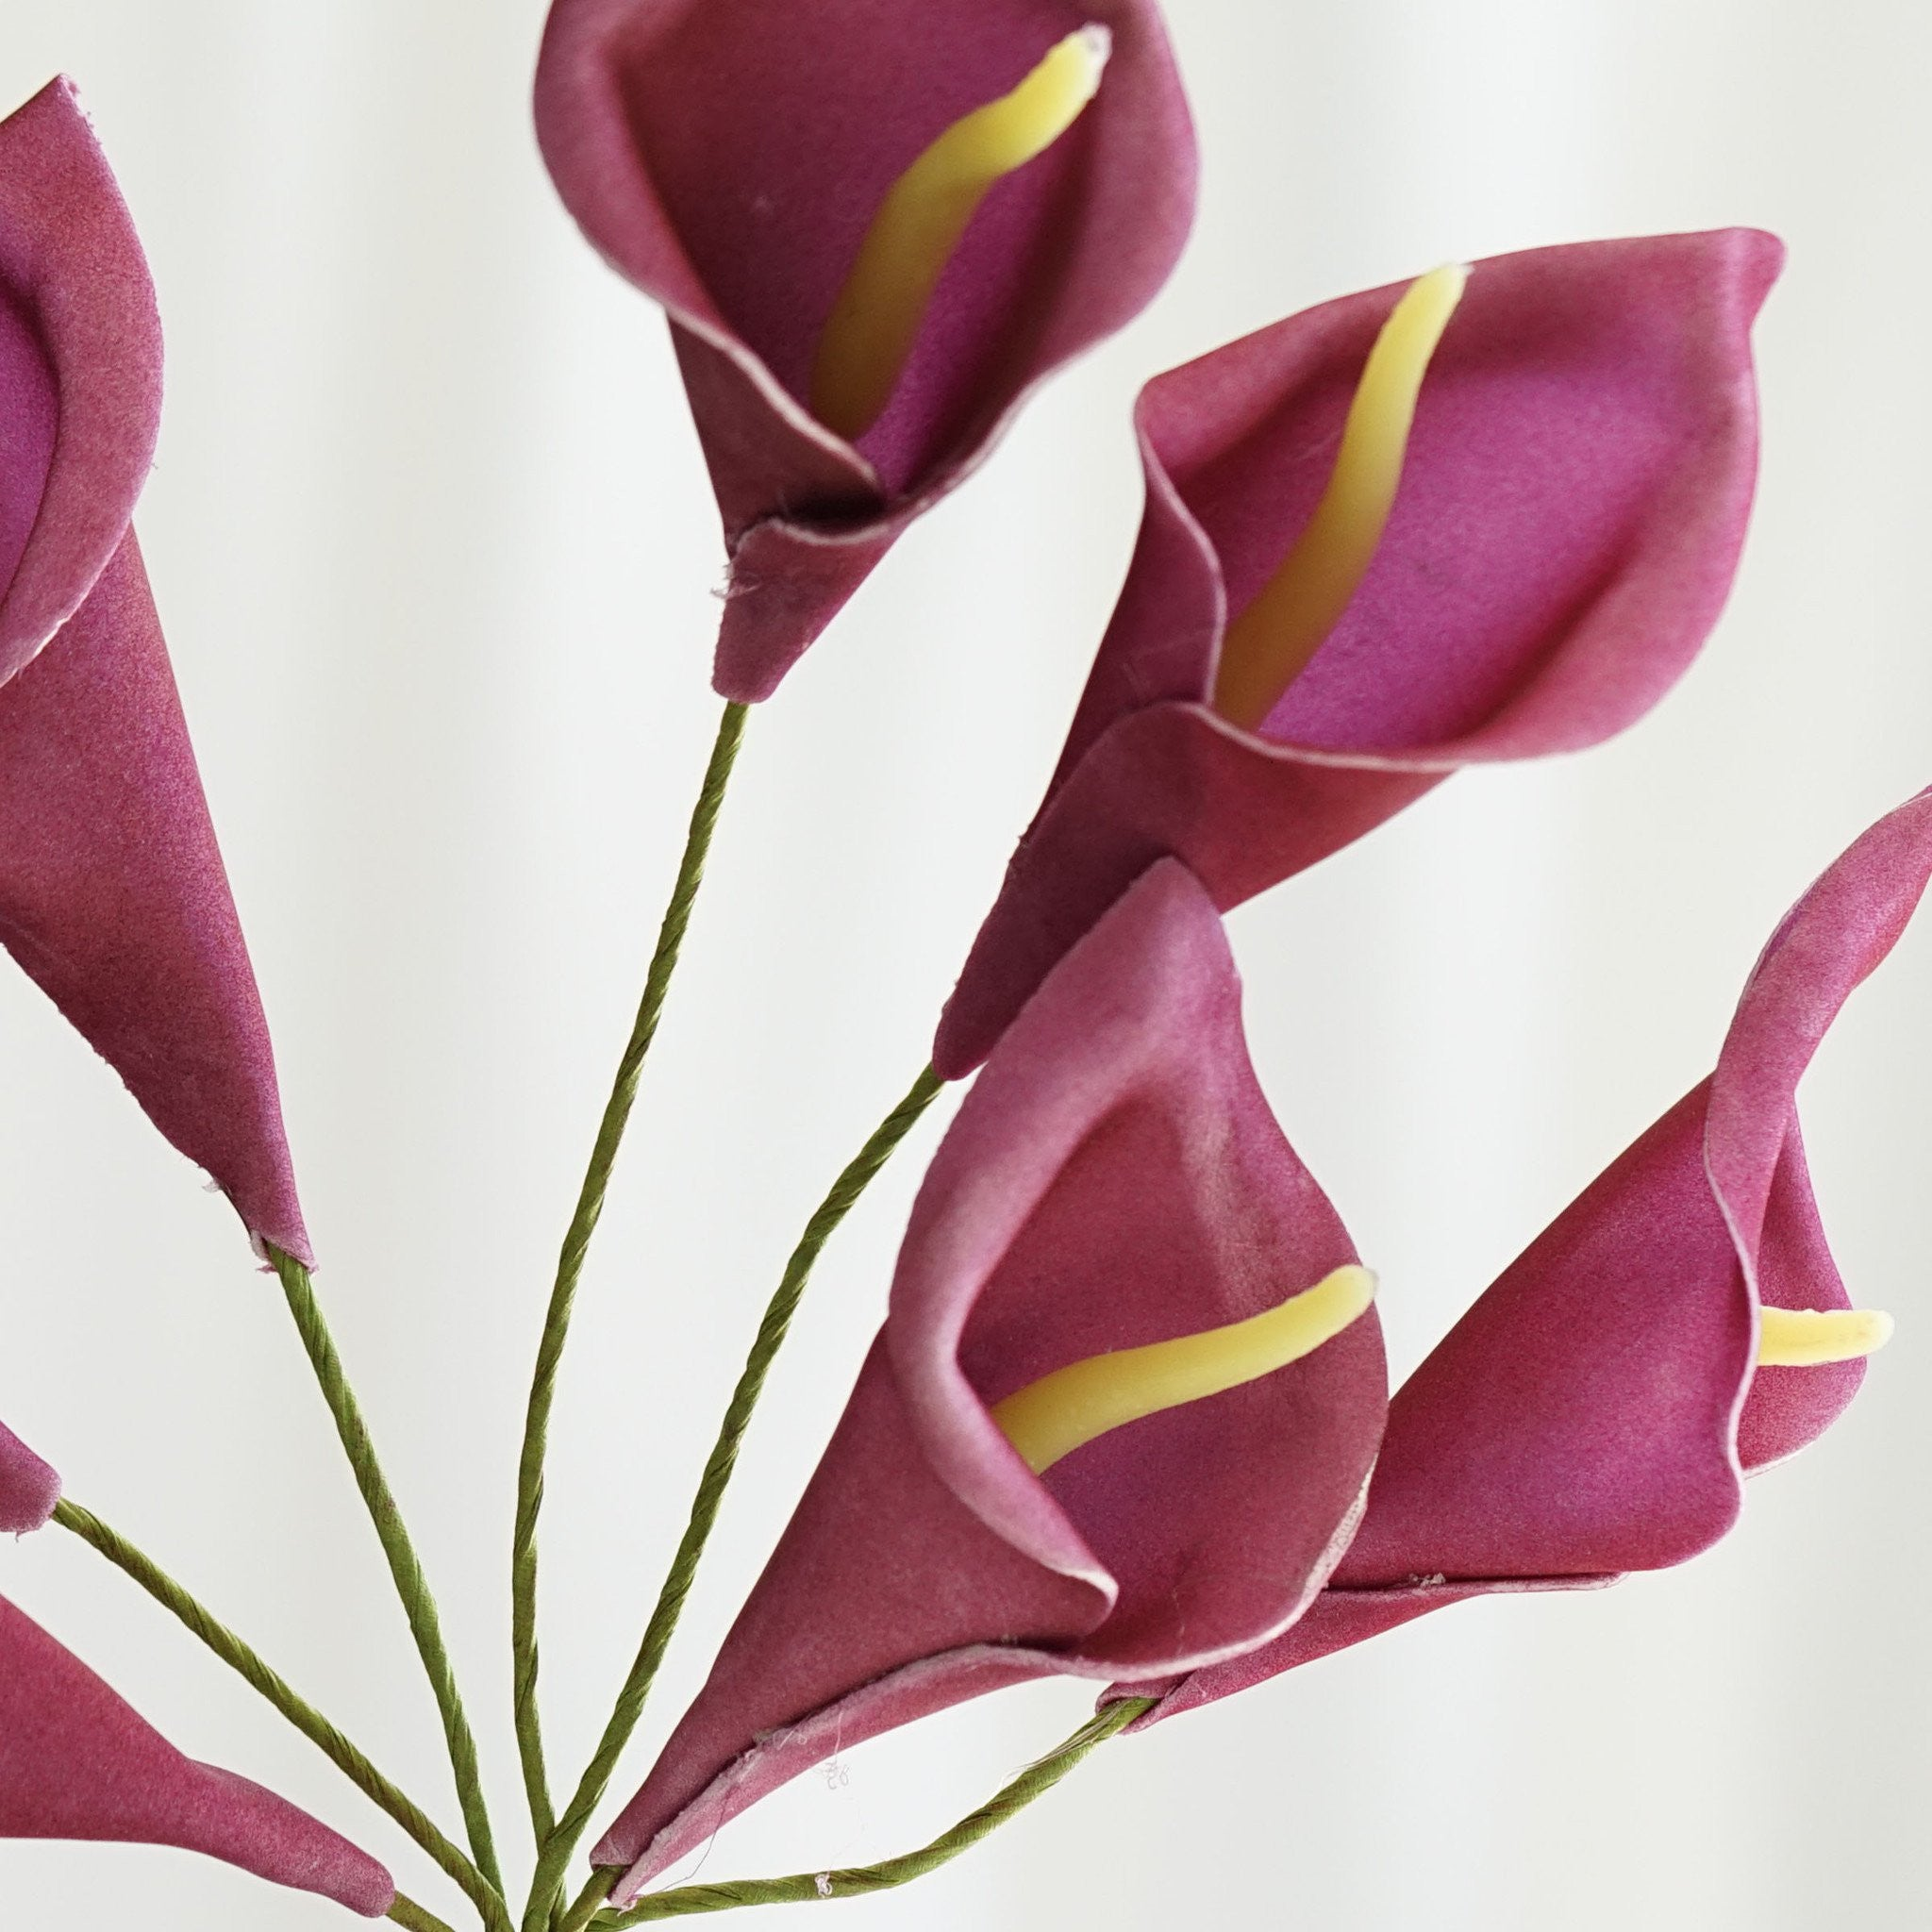 42 artificial purple giant calla lilies flowers wedding bridal 42 lifesize calla lilies purple izmirmasajfo